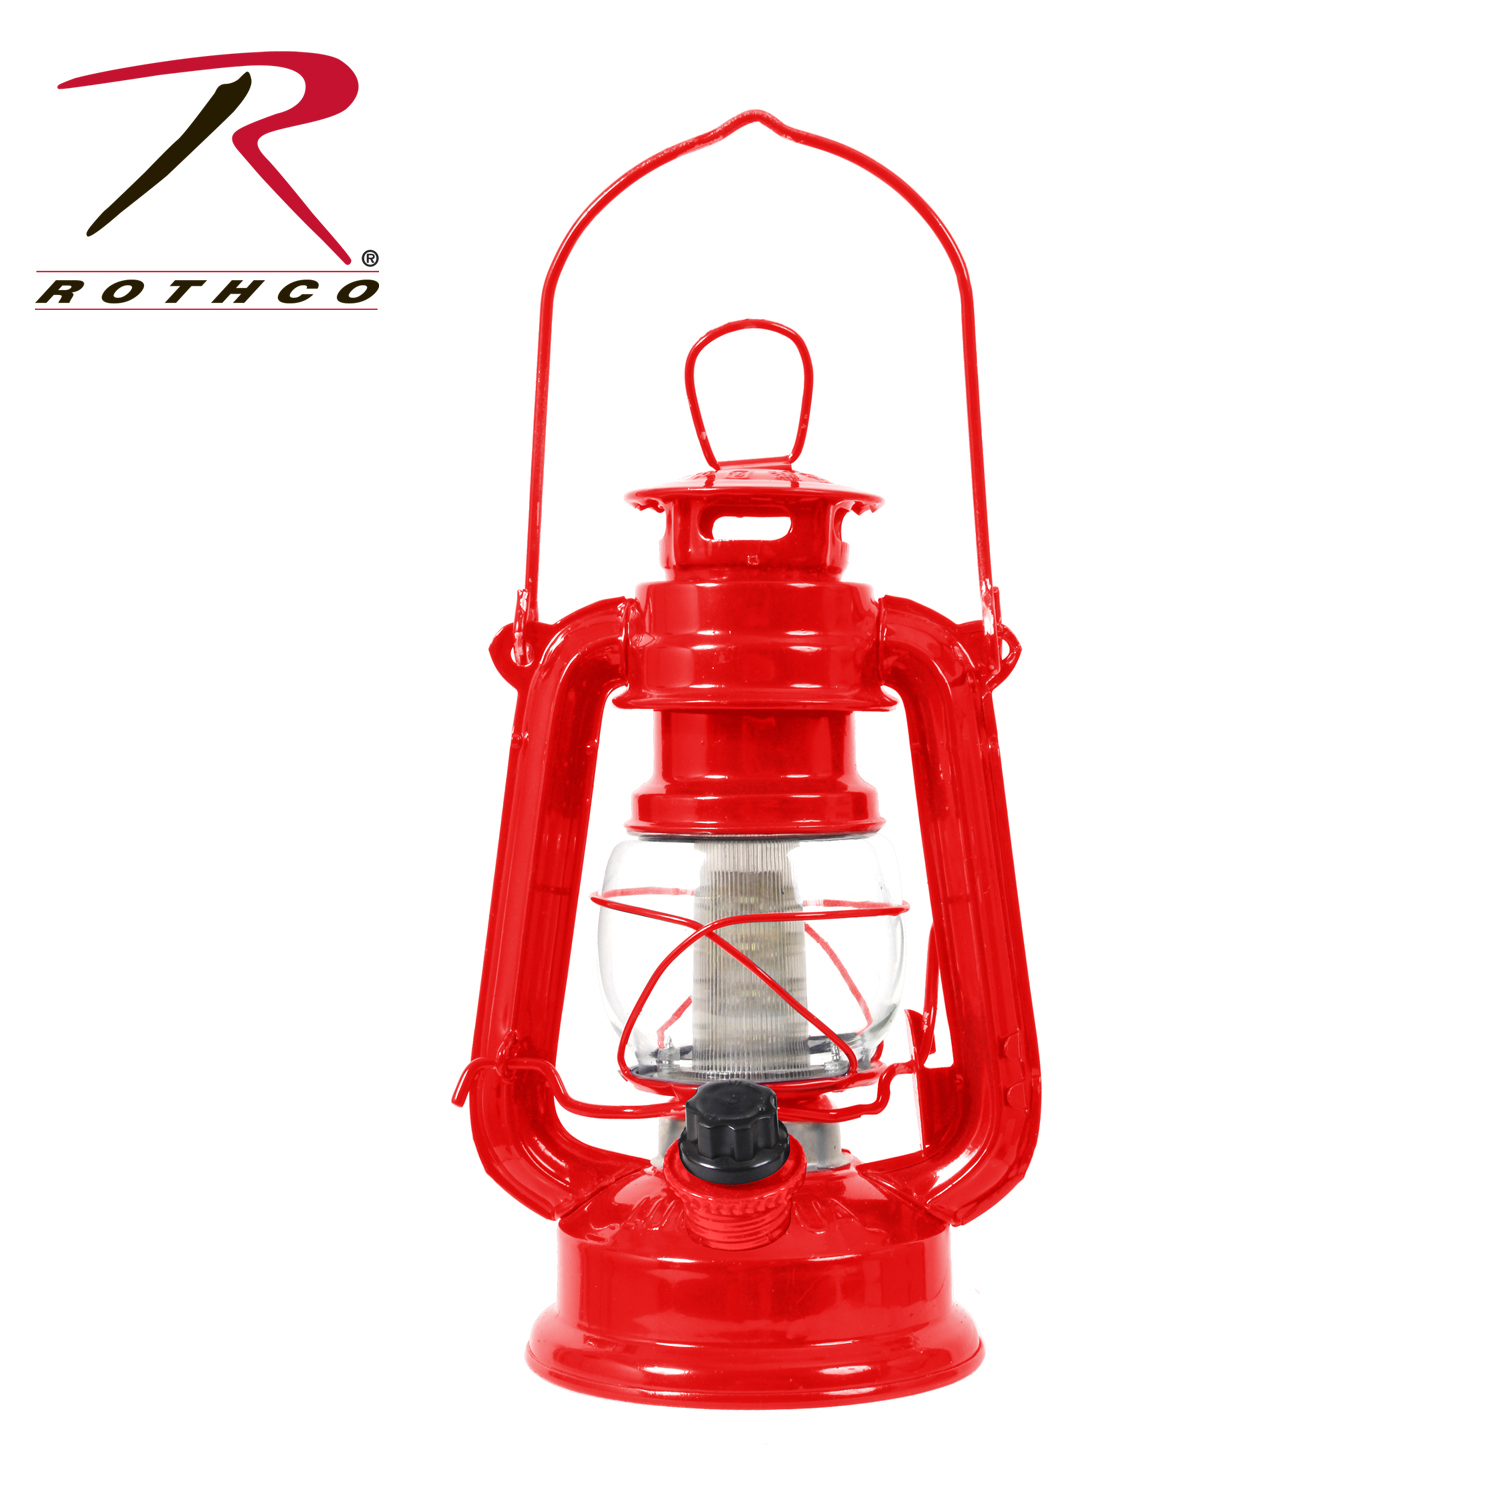 3144 Cree 9 5 Watt 65w Outdoor Flood additionally Metal Pump G And Series Pump Metal Pump Sprayer Home Depot Best Metal Pump Sprayer in addition Led Econ together with Baccarat Crystal Candle Holders Pair At 1stdibs Cf6536f24d8104e2 moreover Rothco 12 Bulb Led Lantern. on hobby led light bulbs